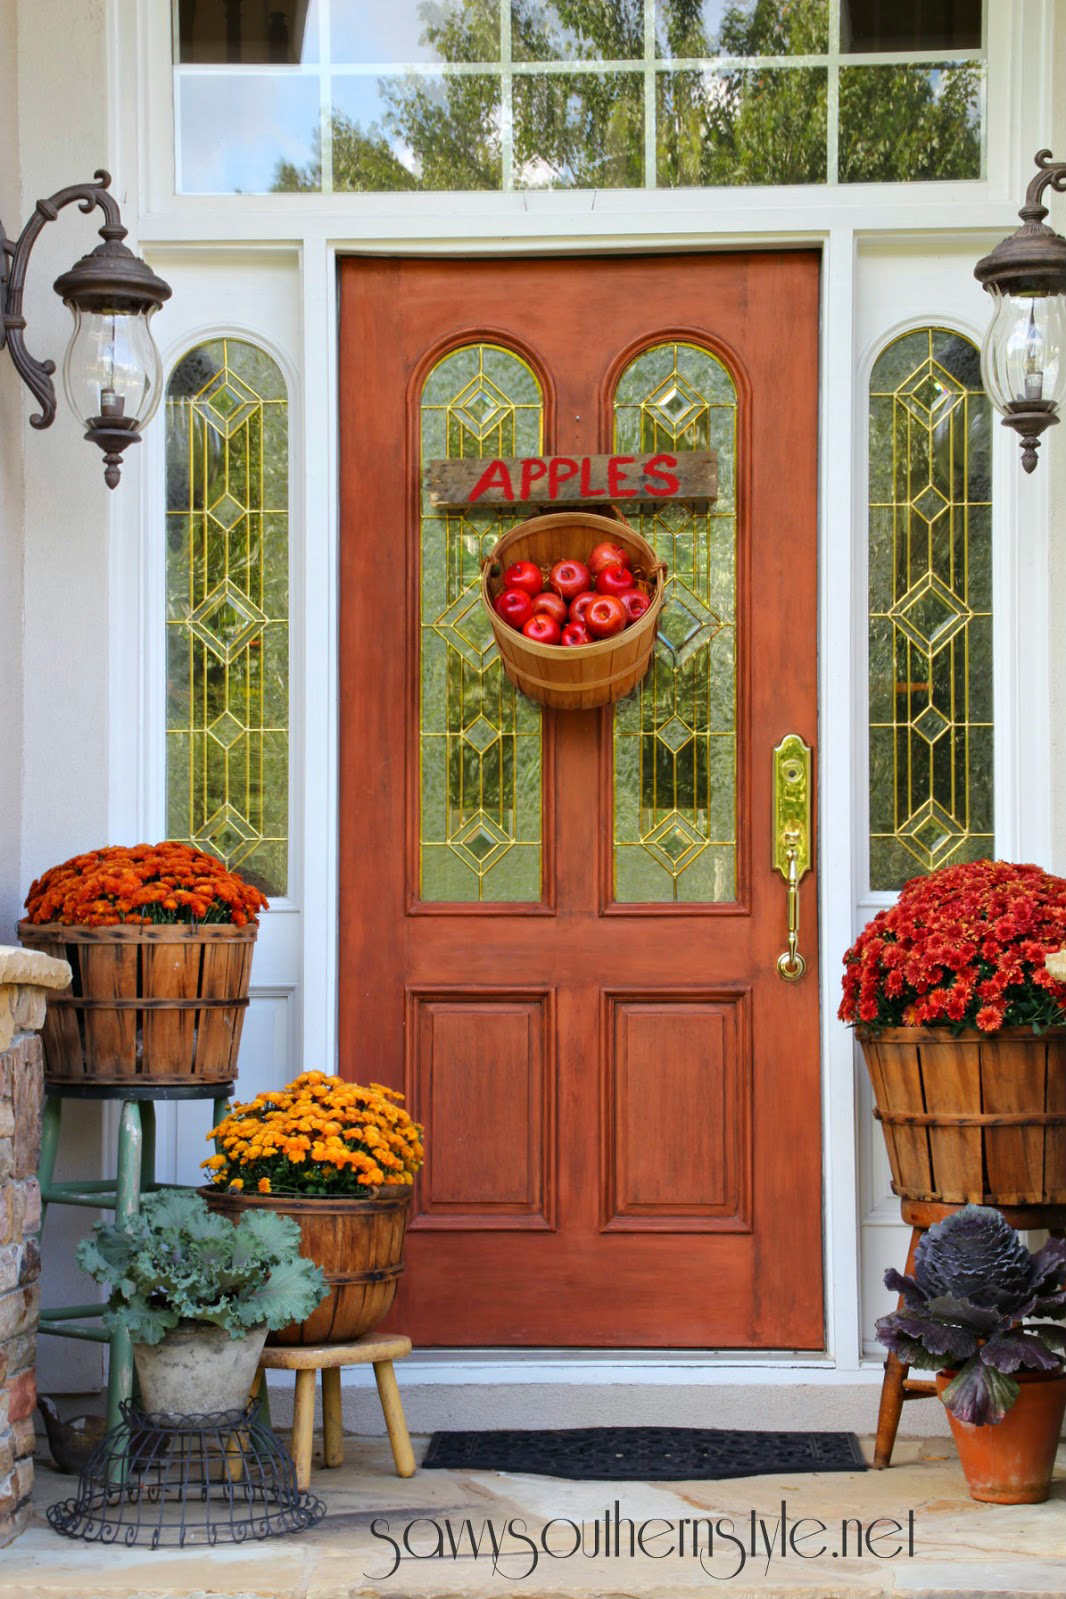 30 Fall Porch Decorating Ideas Top 10 Pro Decorating Tips: Ways To Decorate Your Porch For Fall